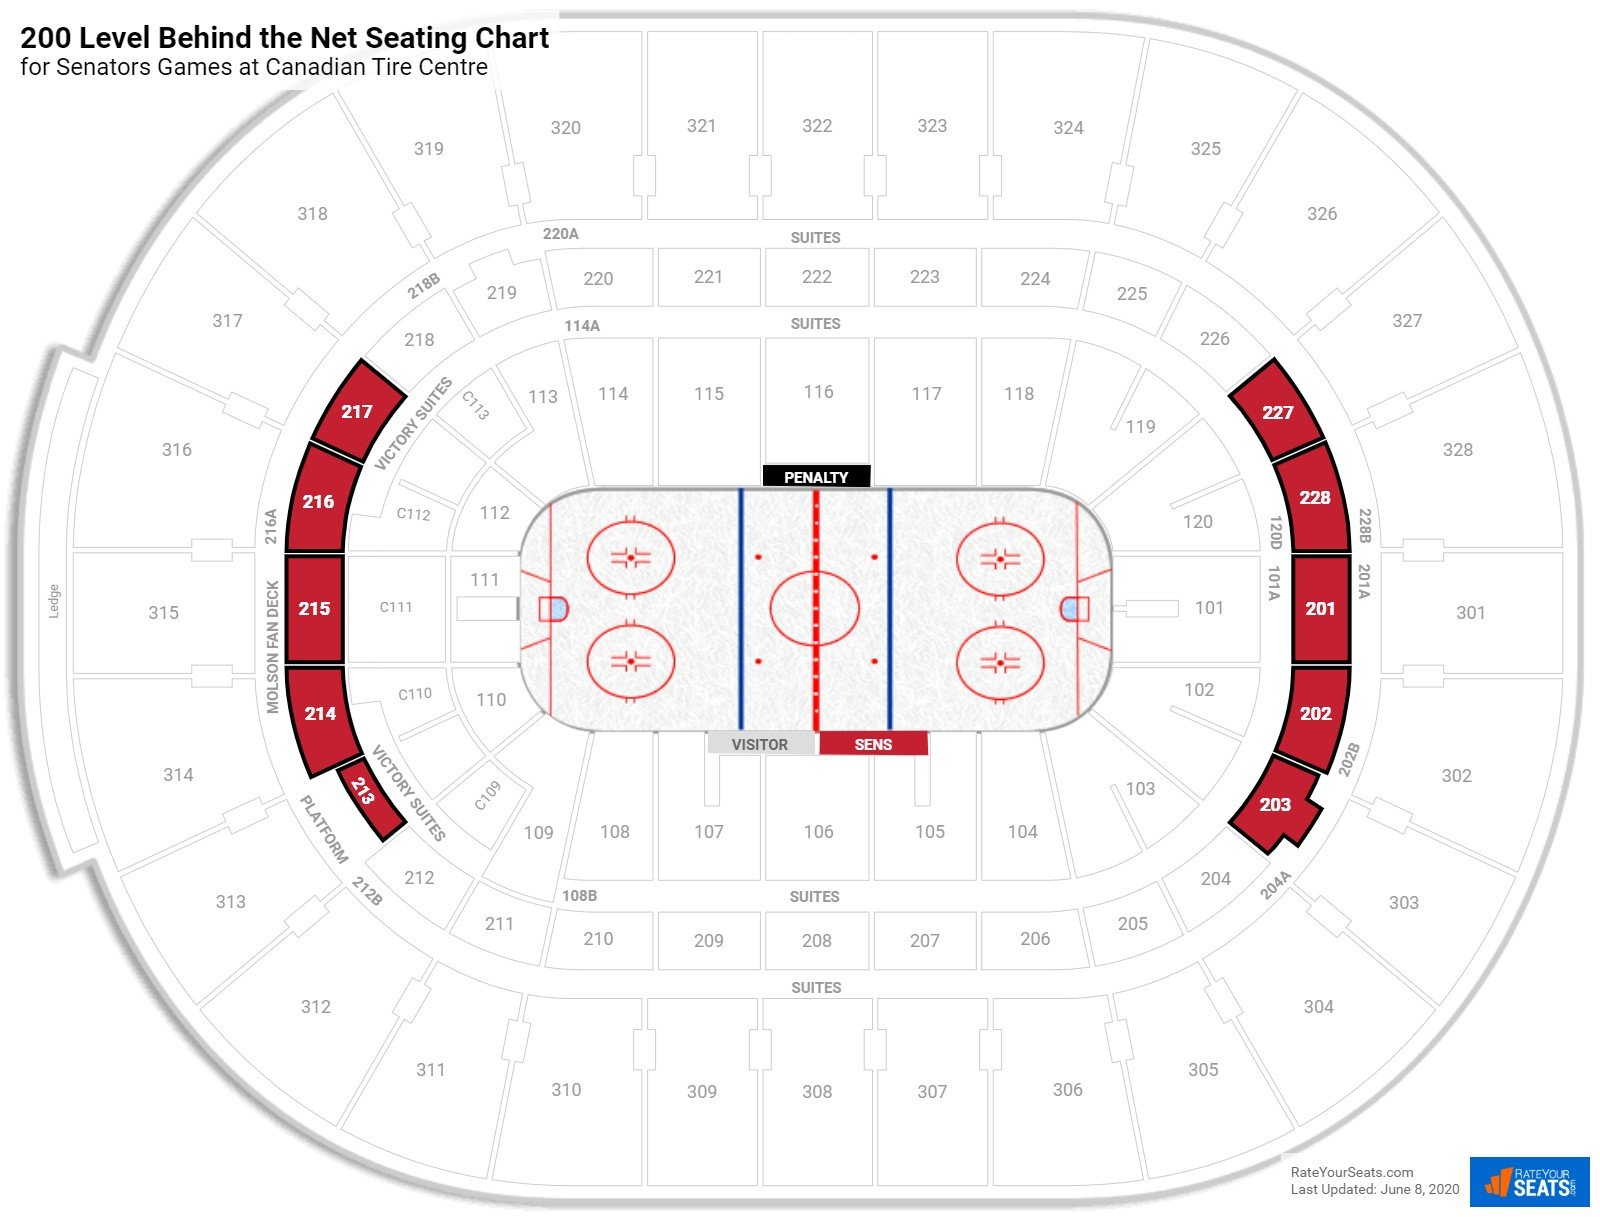 Canadian Tire Centre 200 Level Behind the Net seating chart